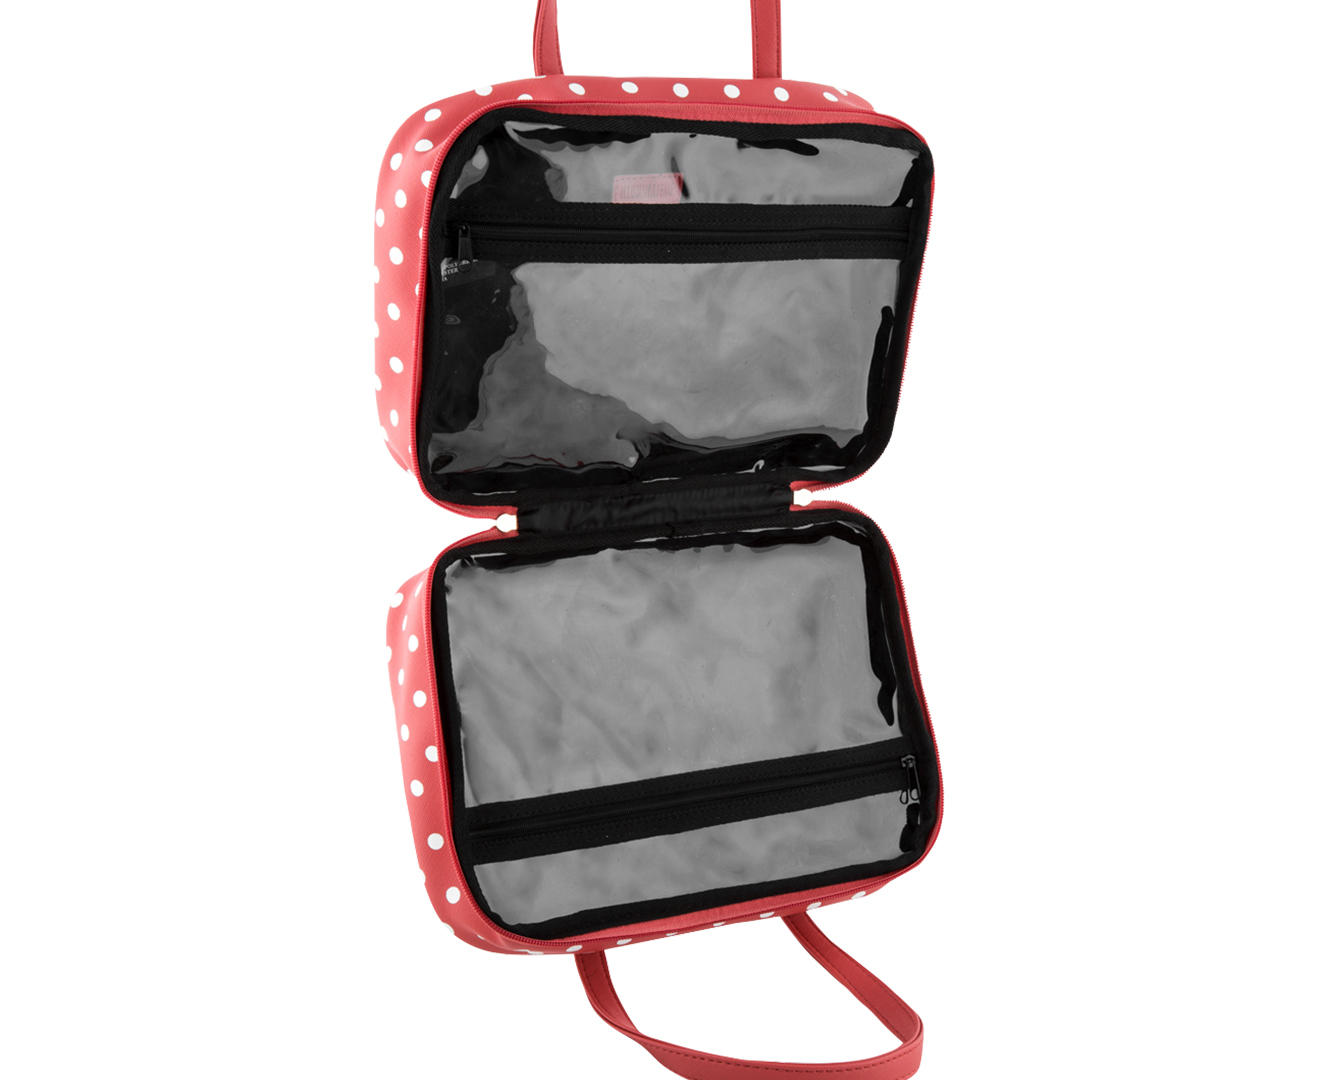 Clear makeup bag with compartments